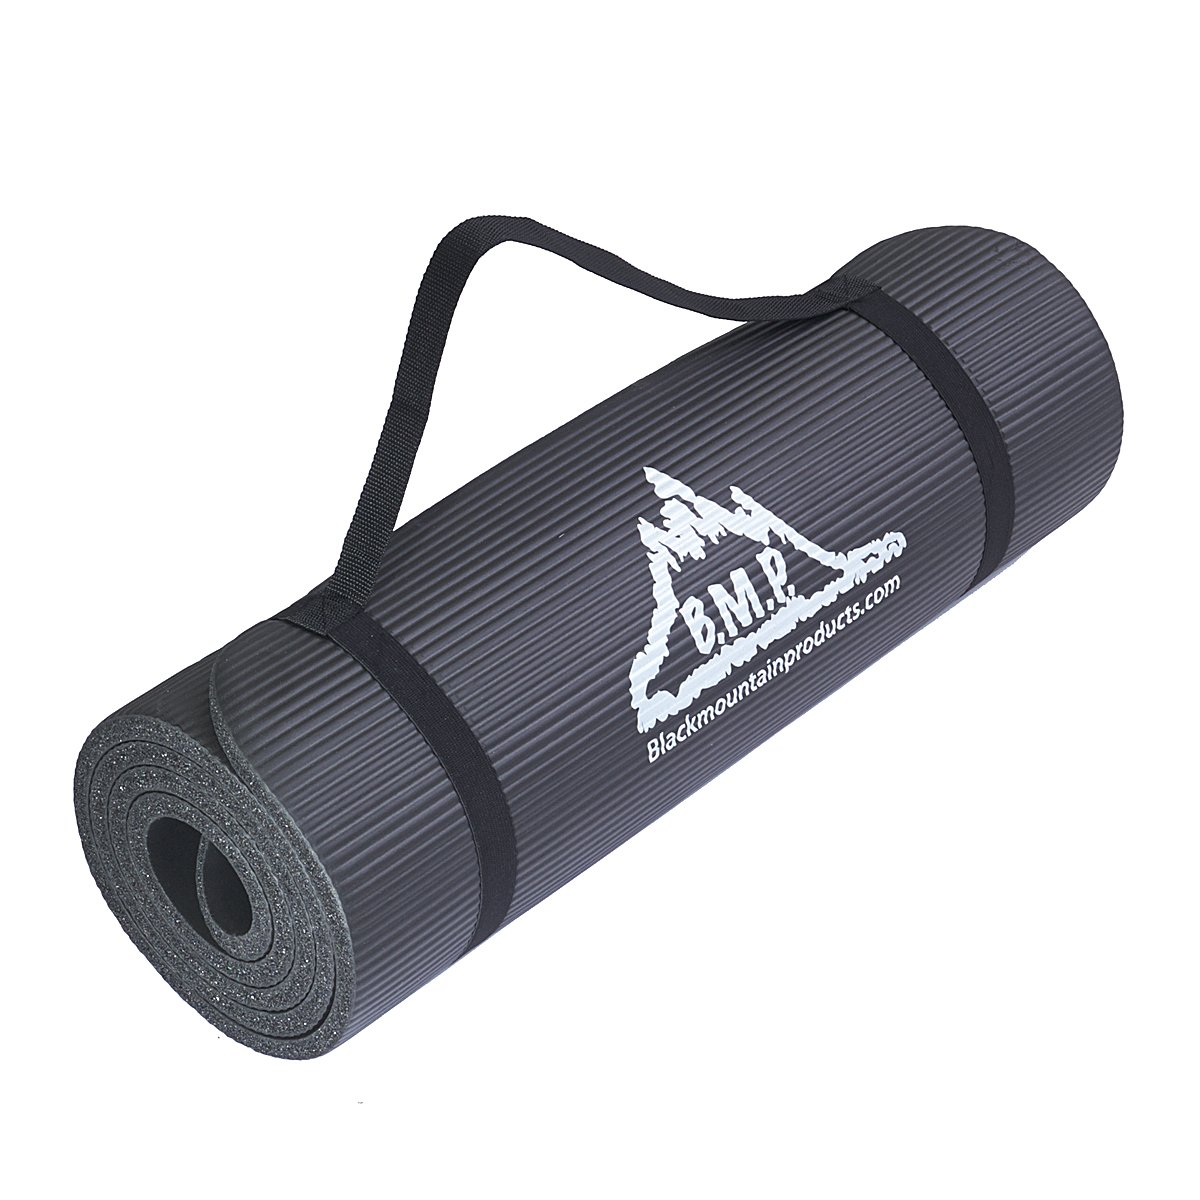 Black Mountain Products Yoga and Exercise Mat, 1 2 x 73 1 2 x 24 1 2-Inch